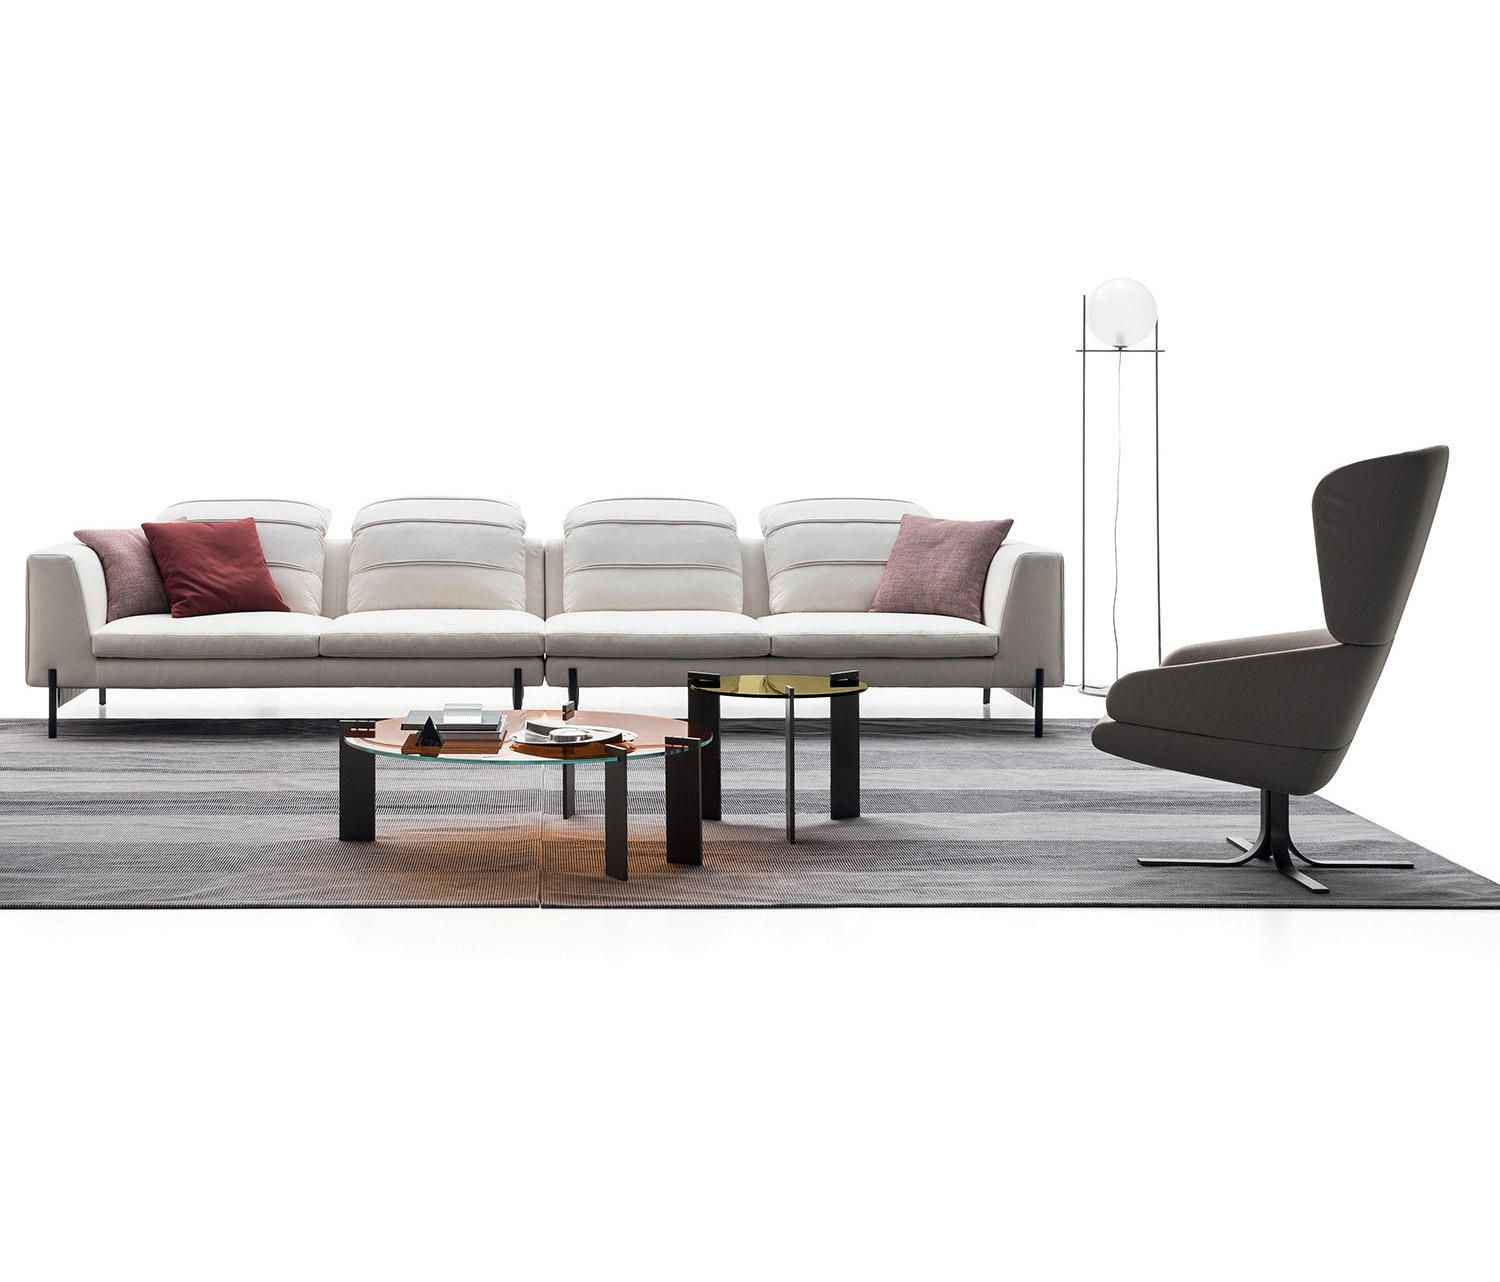 KIM Designer Sofas from DITRE ITALIA all information